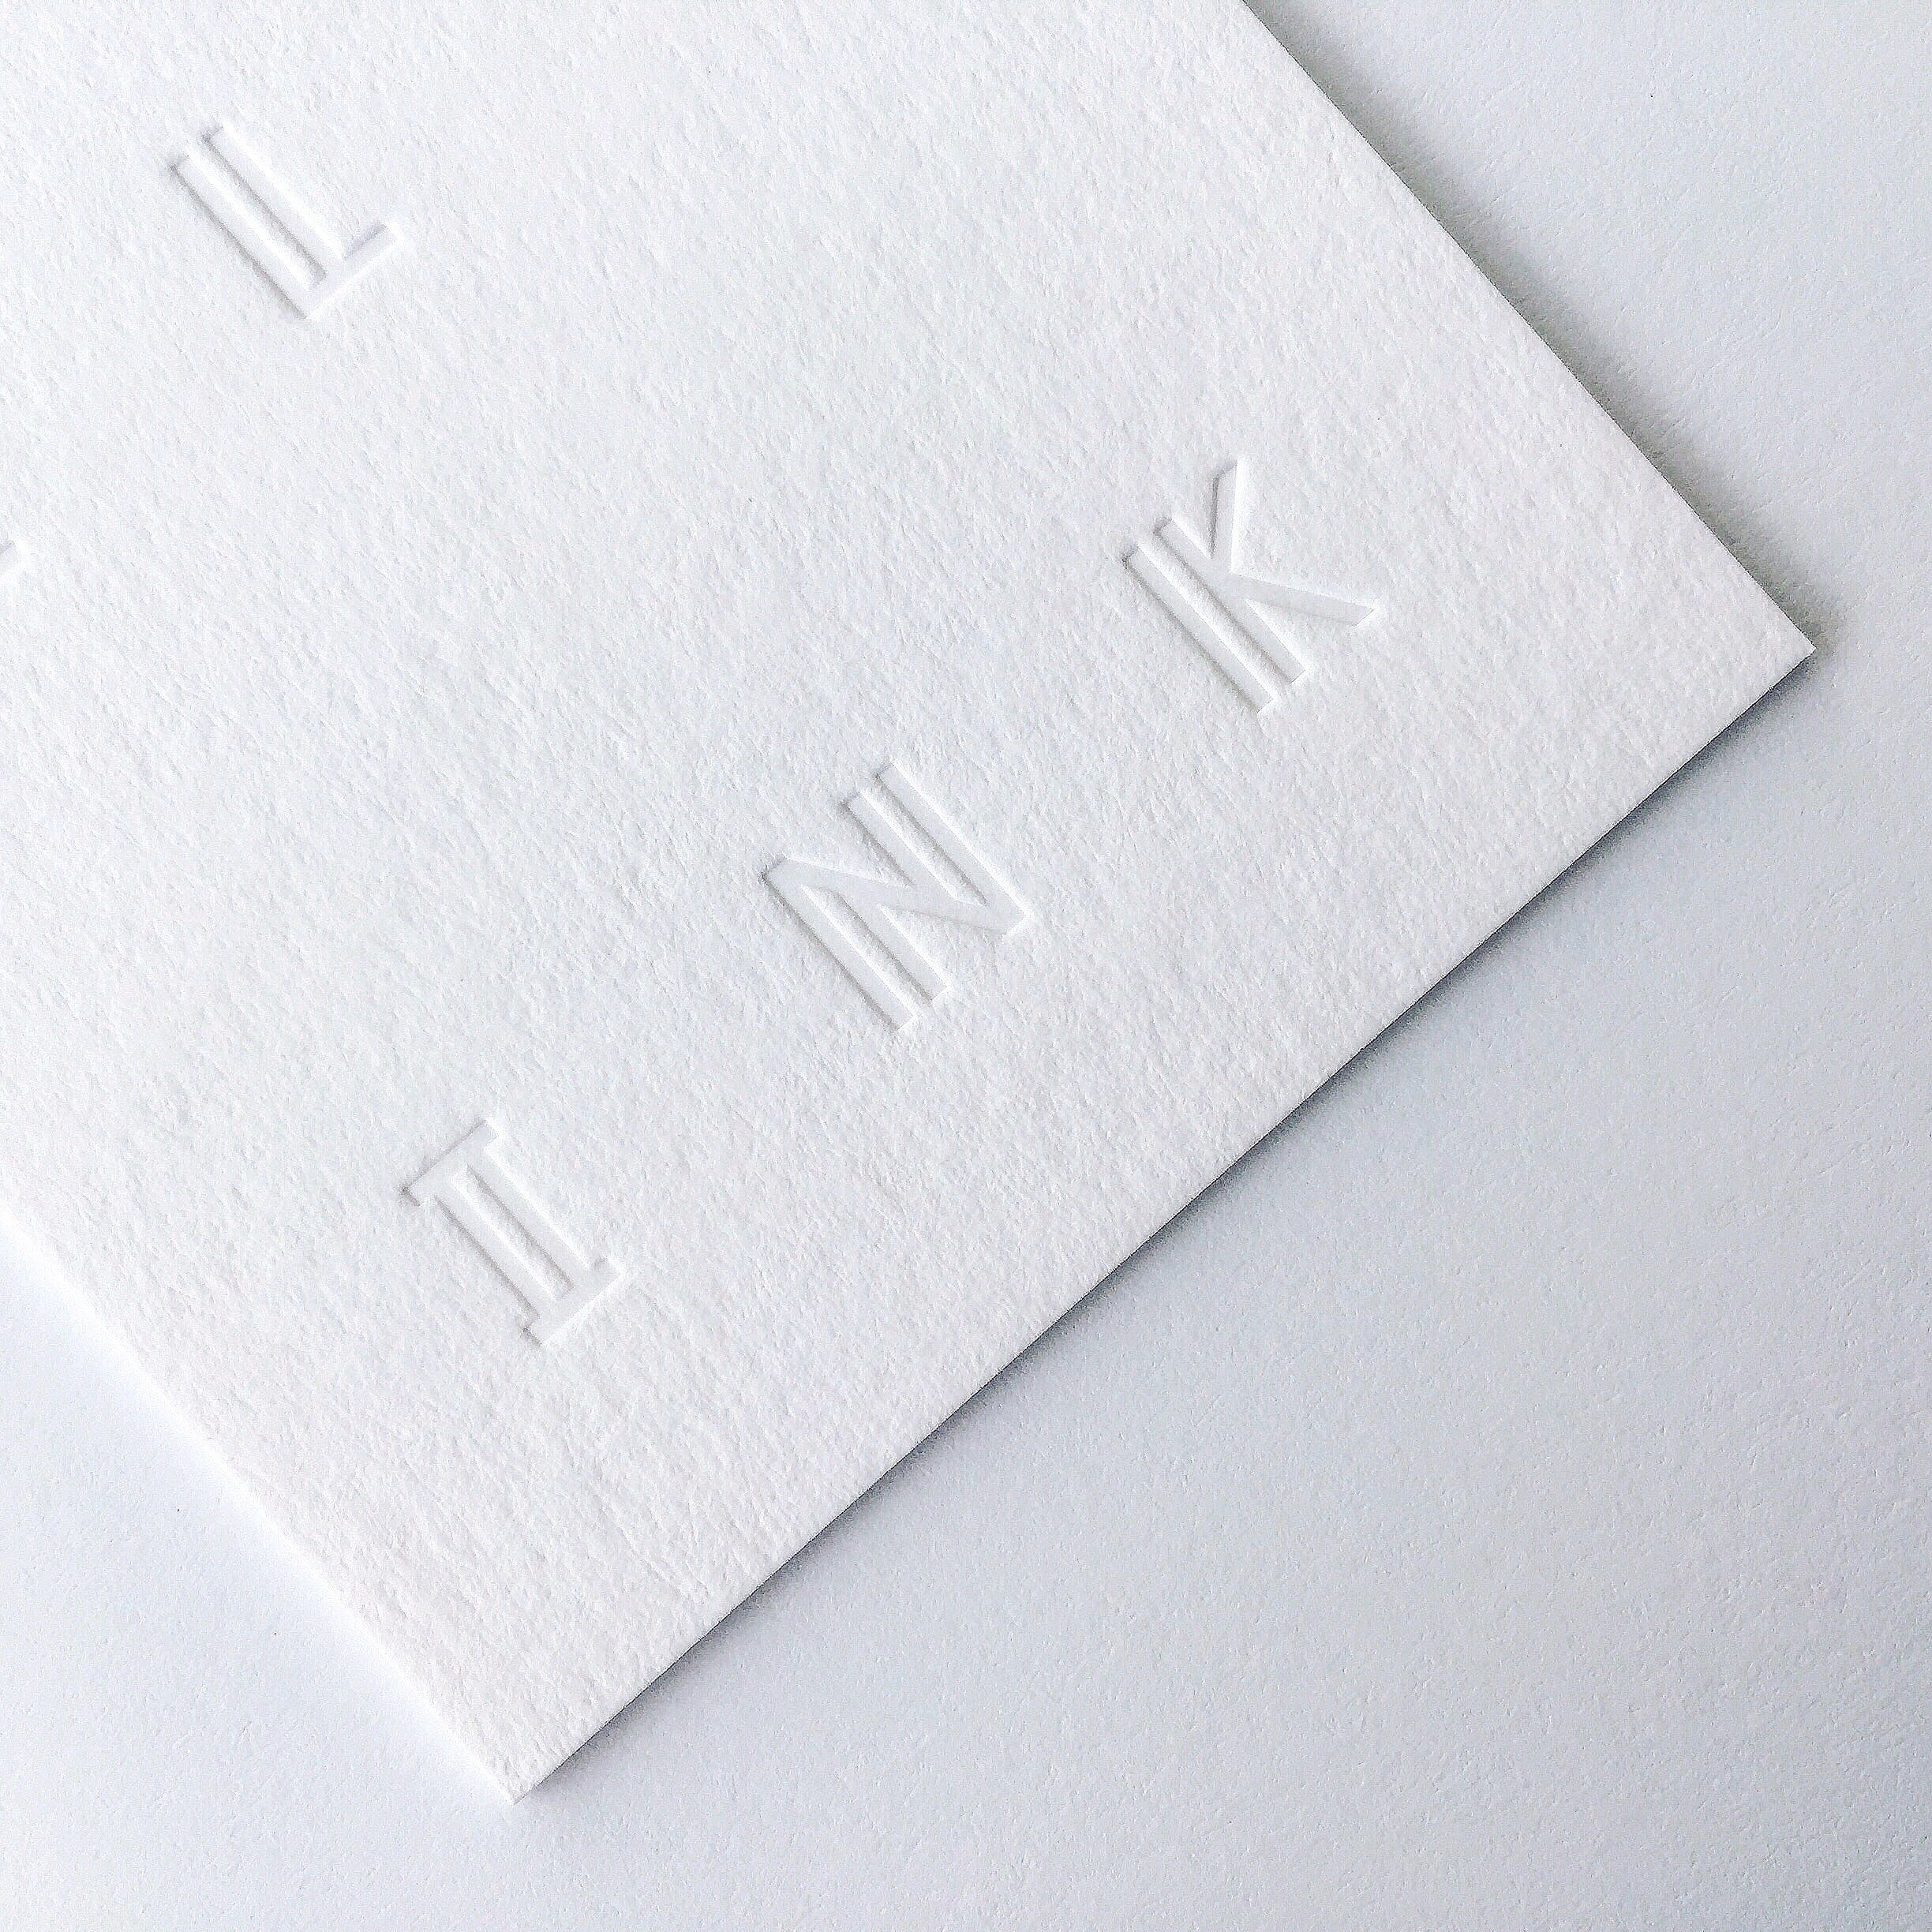 Blind debossing Business cards Printed by Dot Studio   cover ...